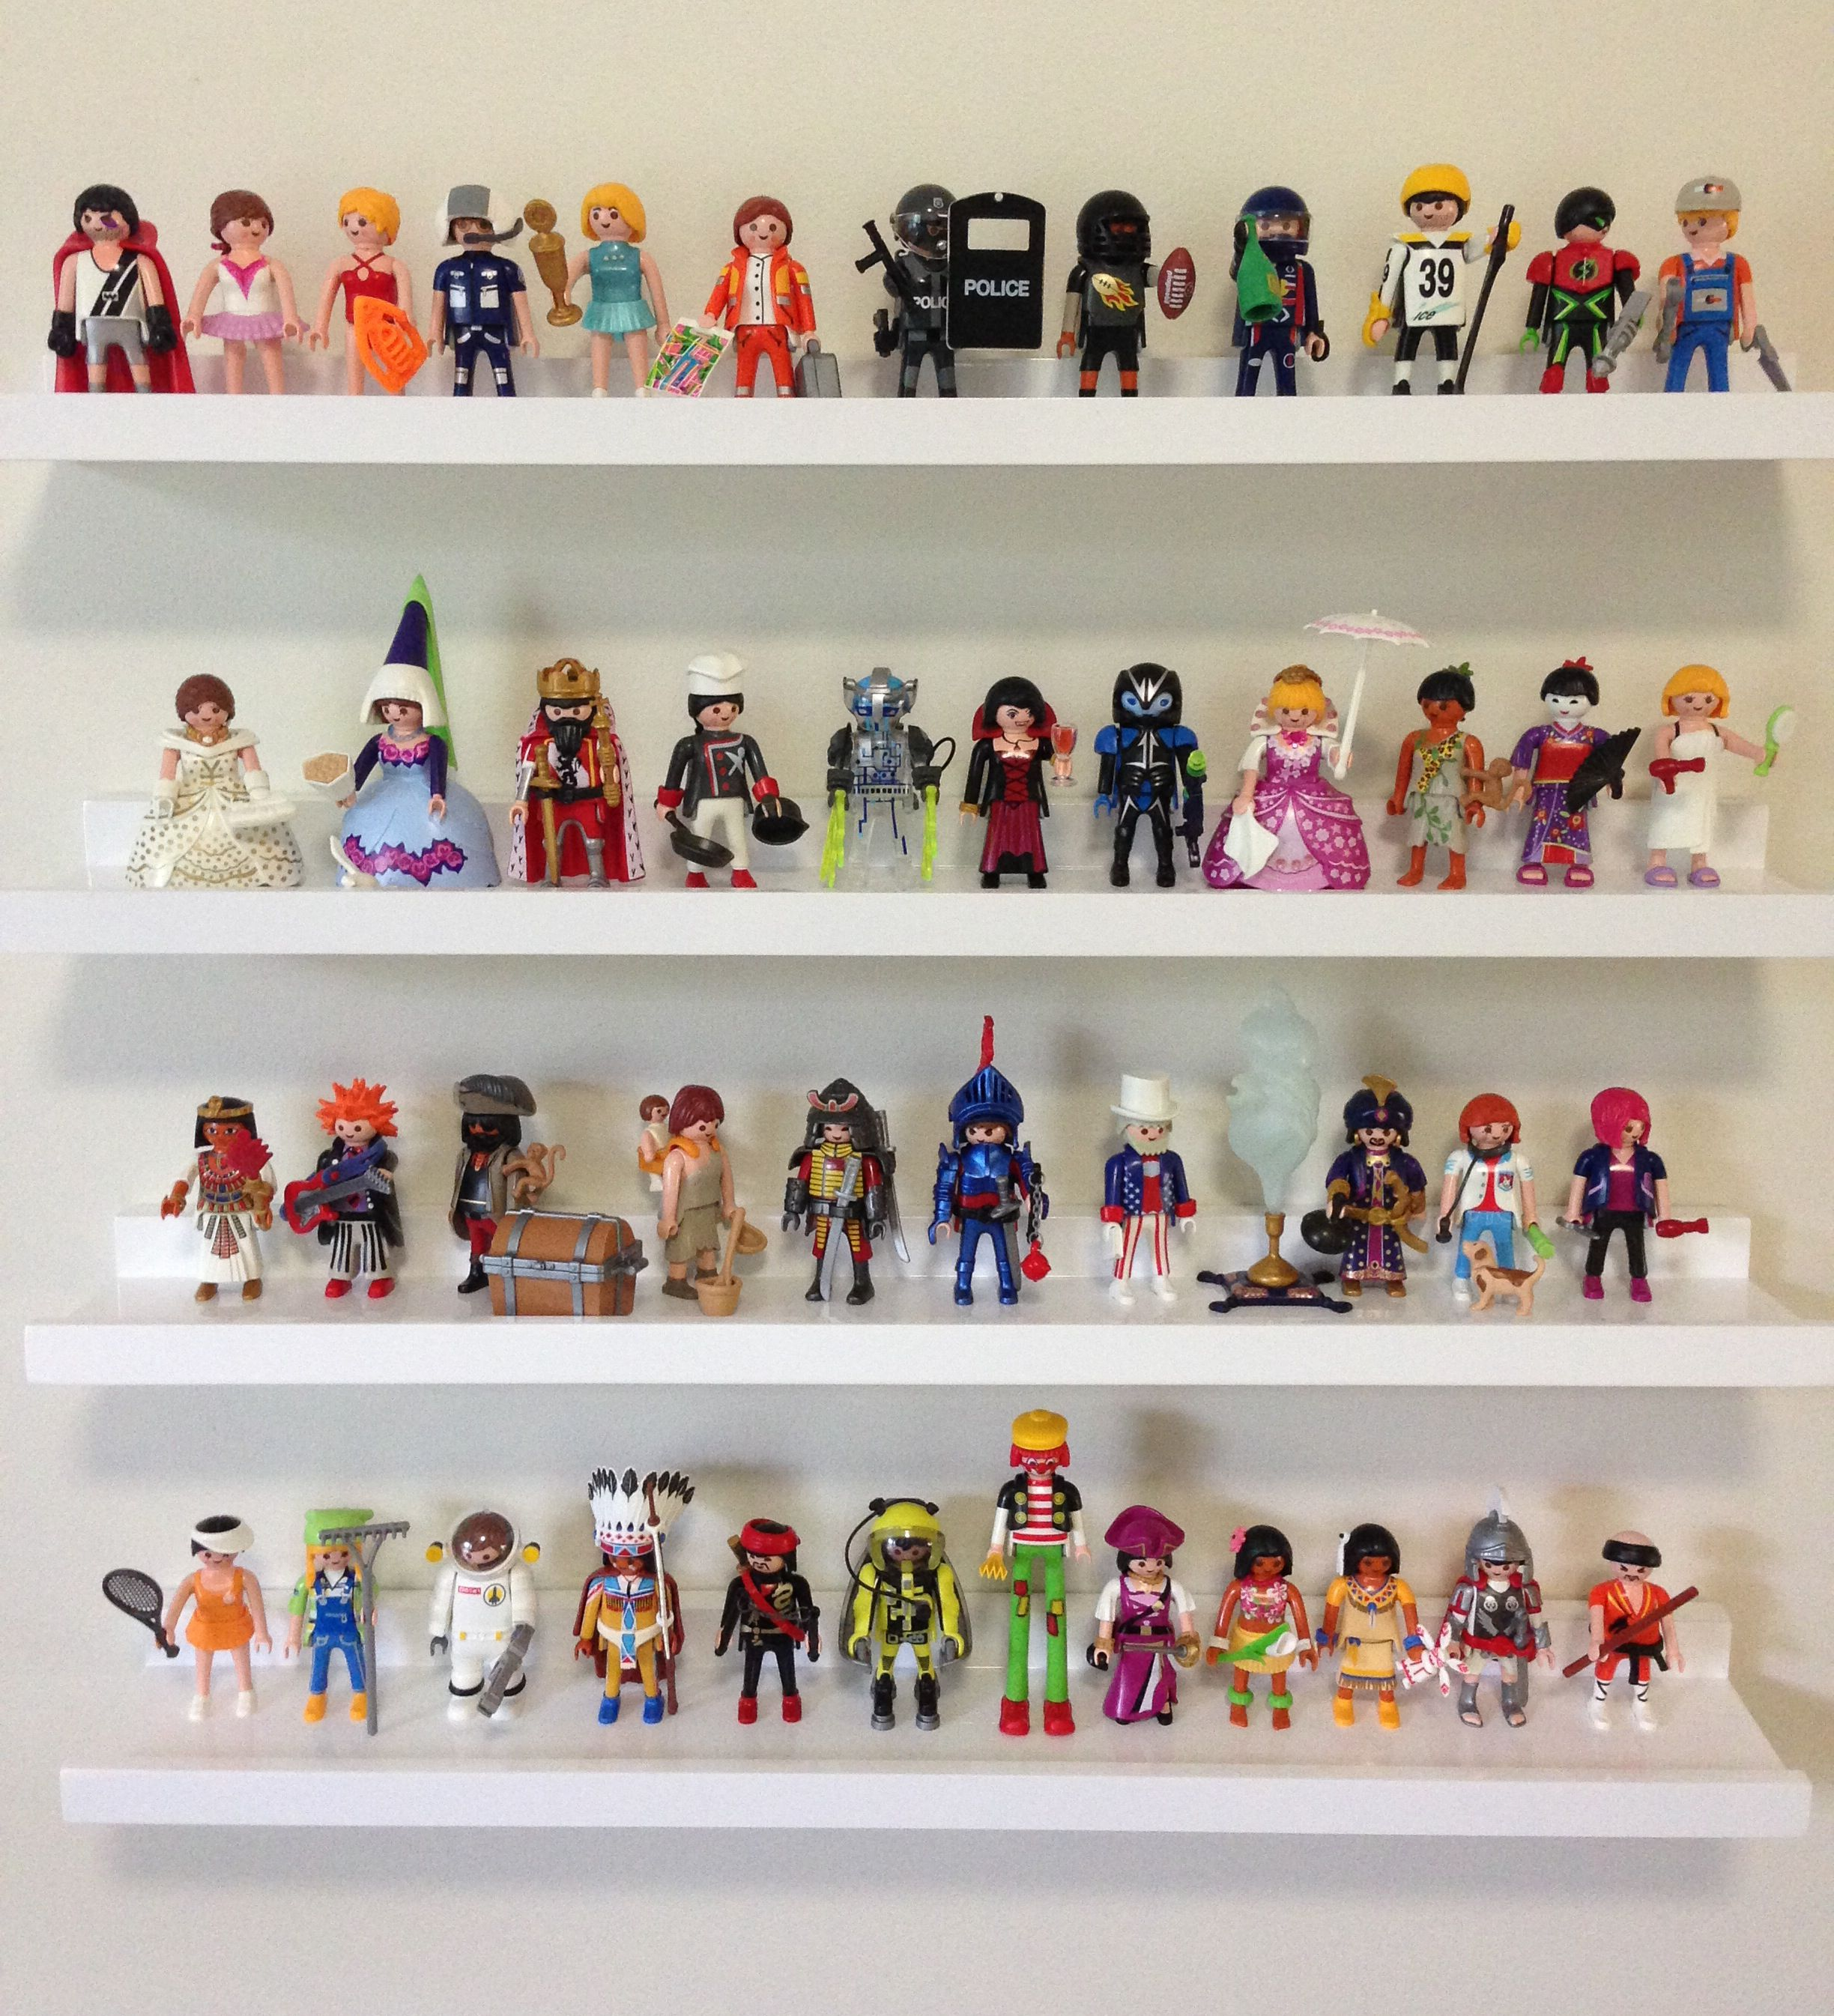 Ideen Aufbewahrung Playmobil Shelves To Display Playmobil Figures Kids In 2019